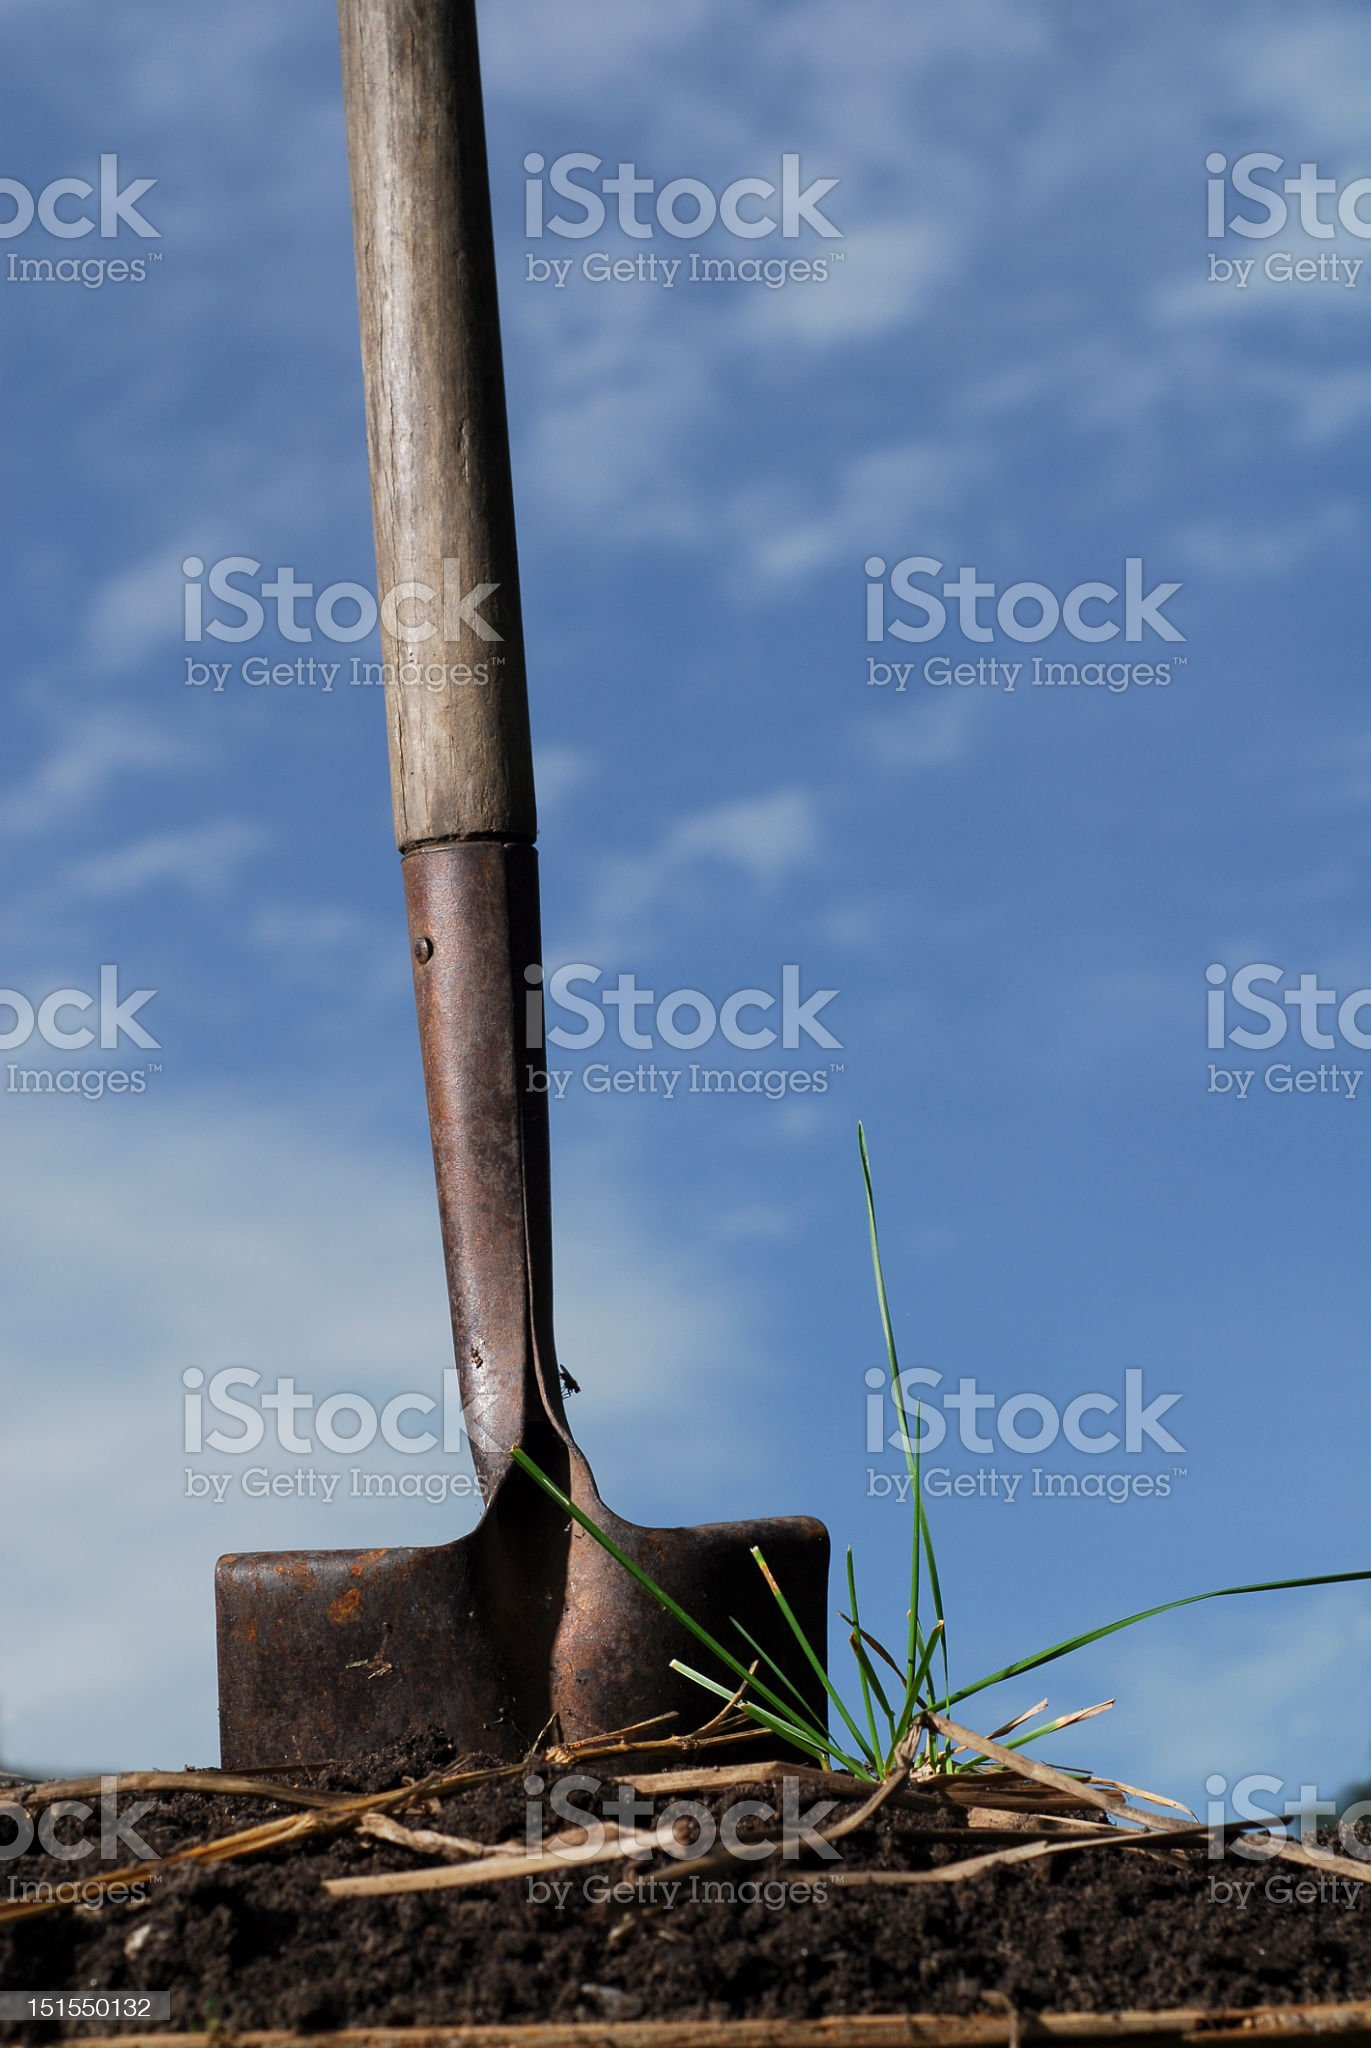 Close-up of Shovel standing in soil with sky background royalty-free stock photo